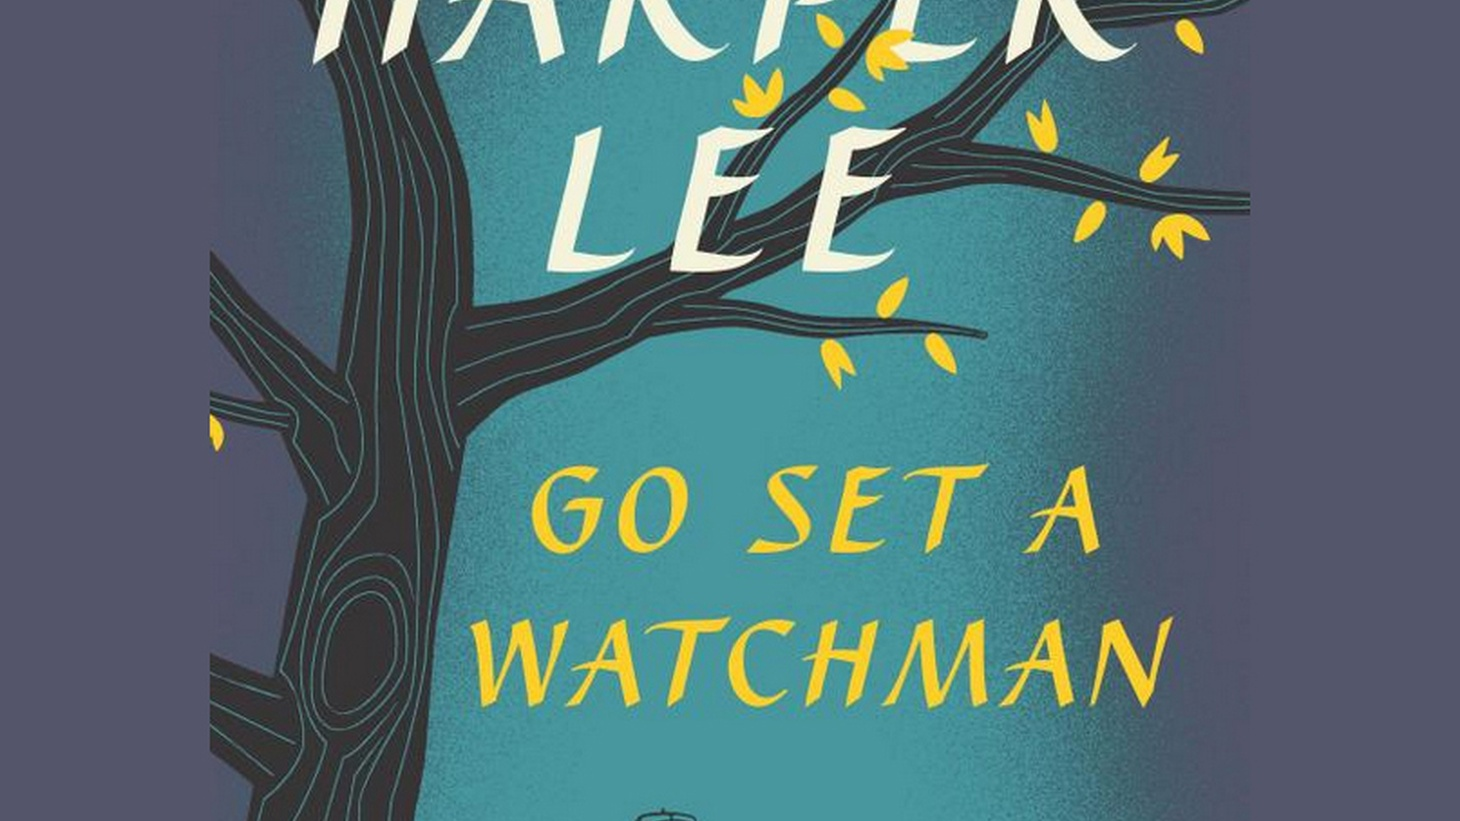 Michael Silverblatt in conversation with Bookworm producer Connie Alvarez about the recent book by the late author. Harper Lee died today at the age of 89.